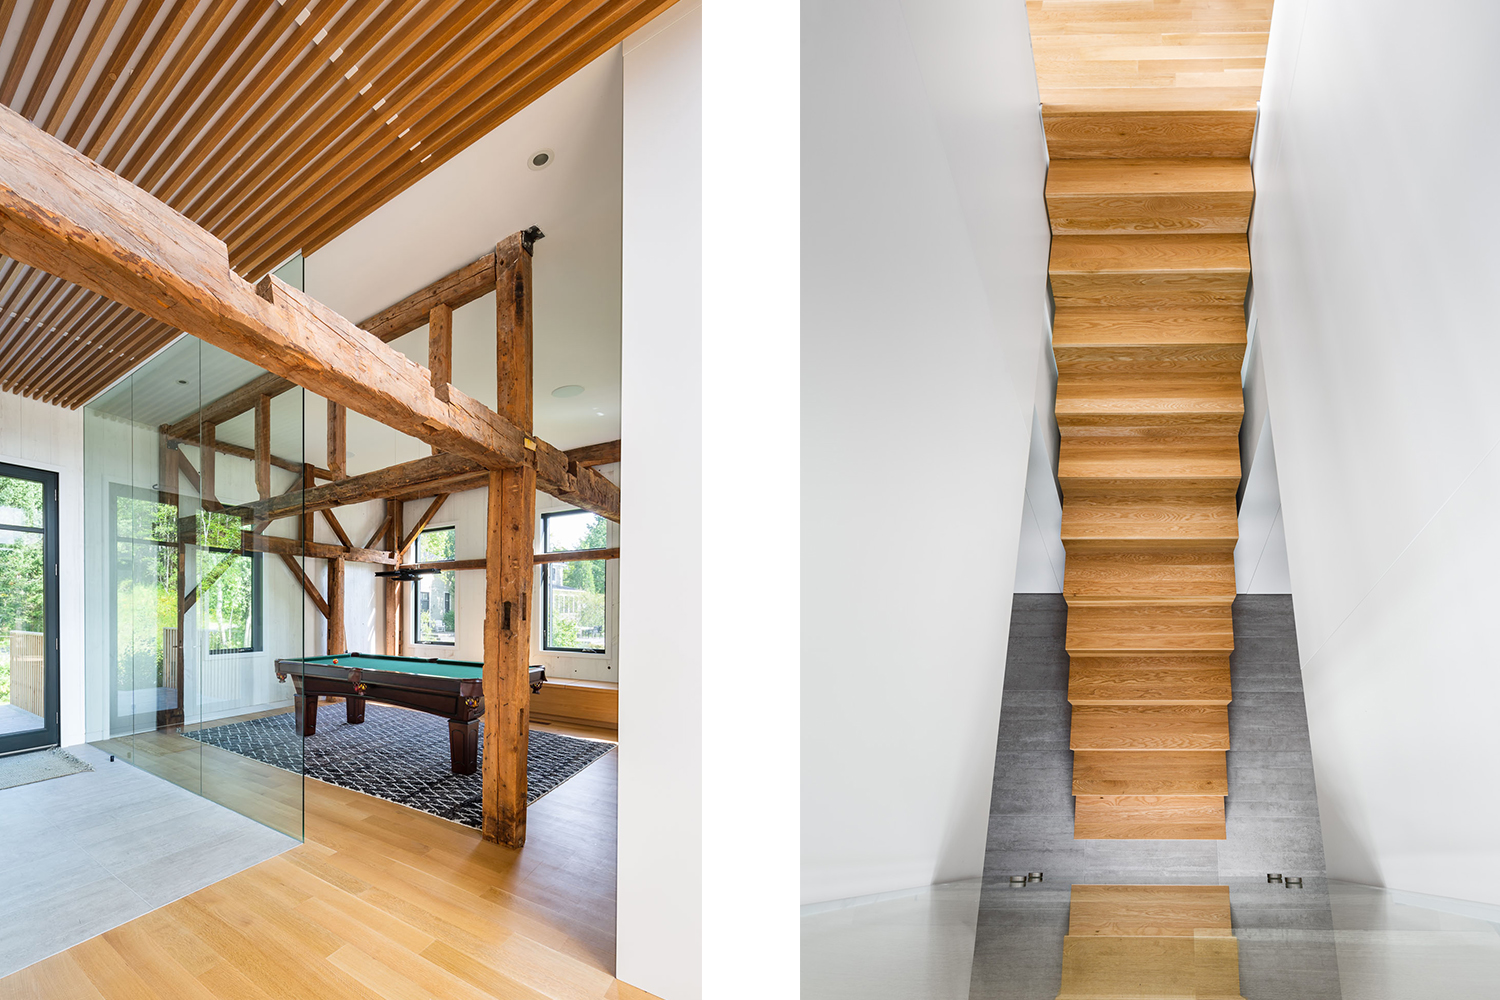 Games room with pool table in a cottage. Full height glass wall. Old barn structure in apparent wood. Staircase in white oak leading to the basement, concrete floor.